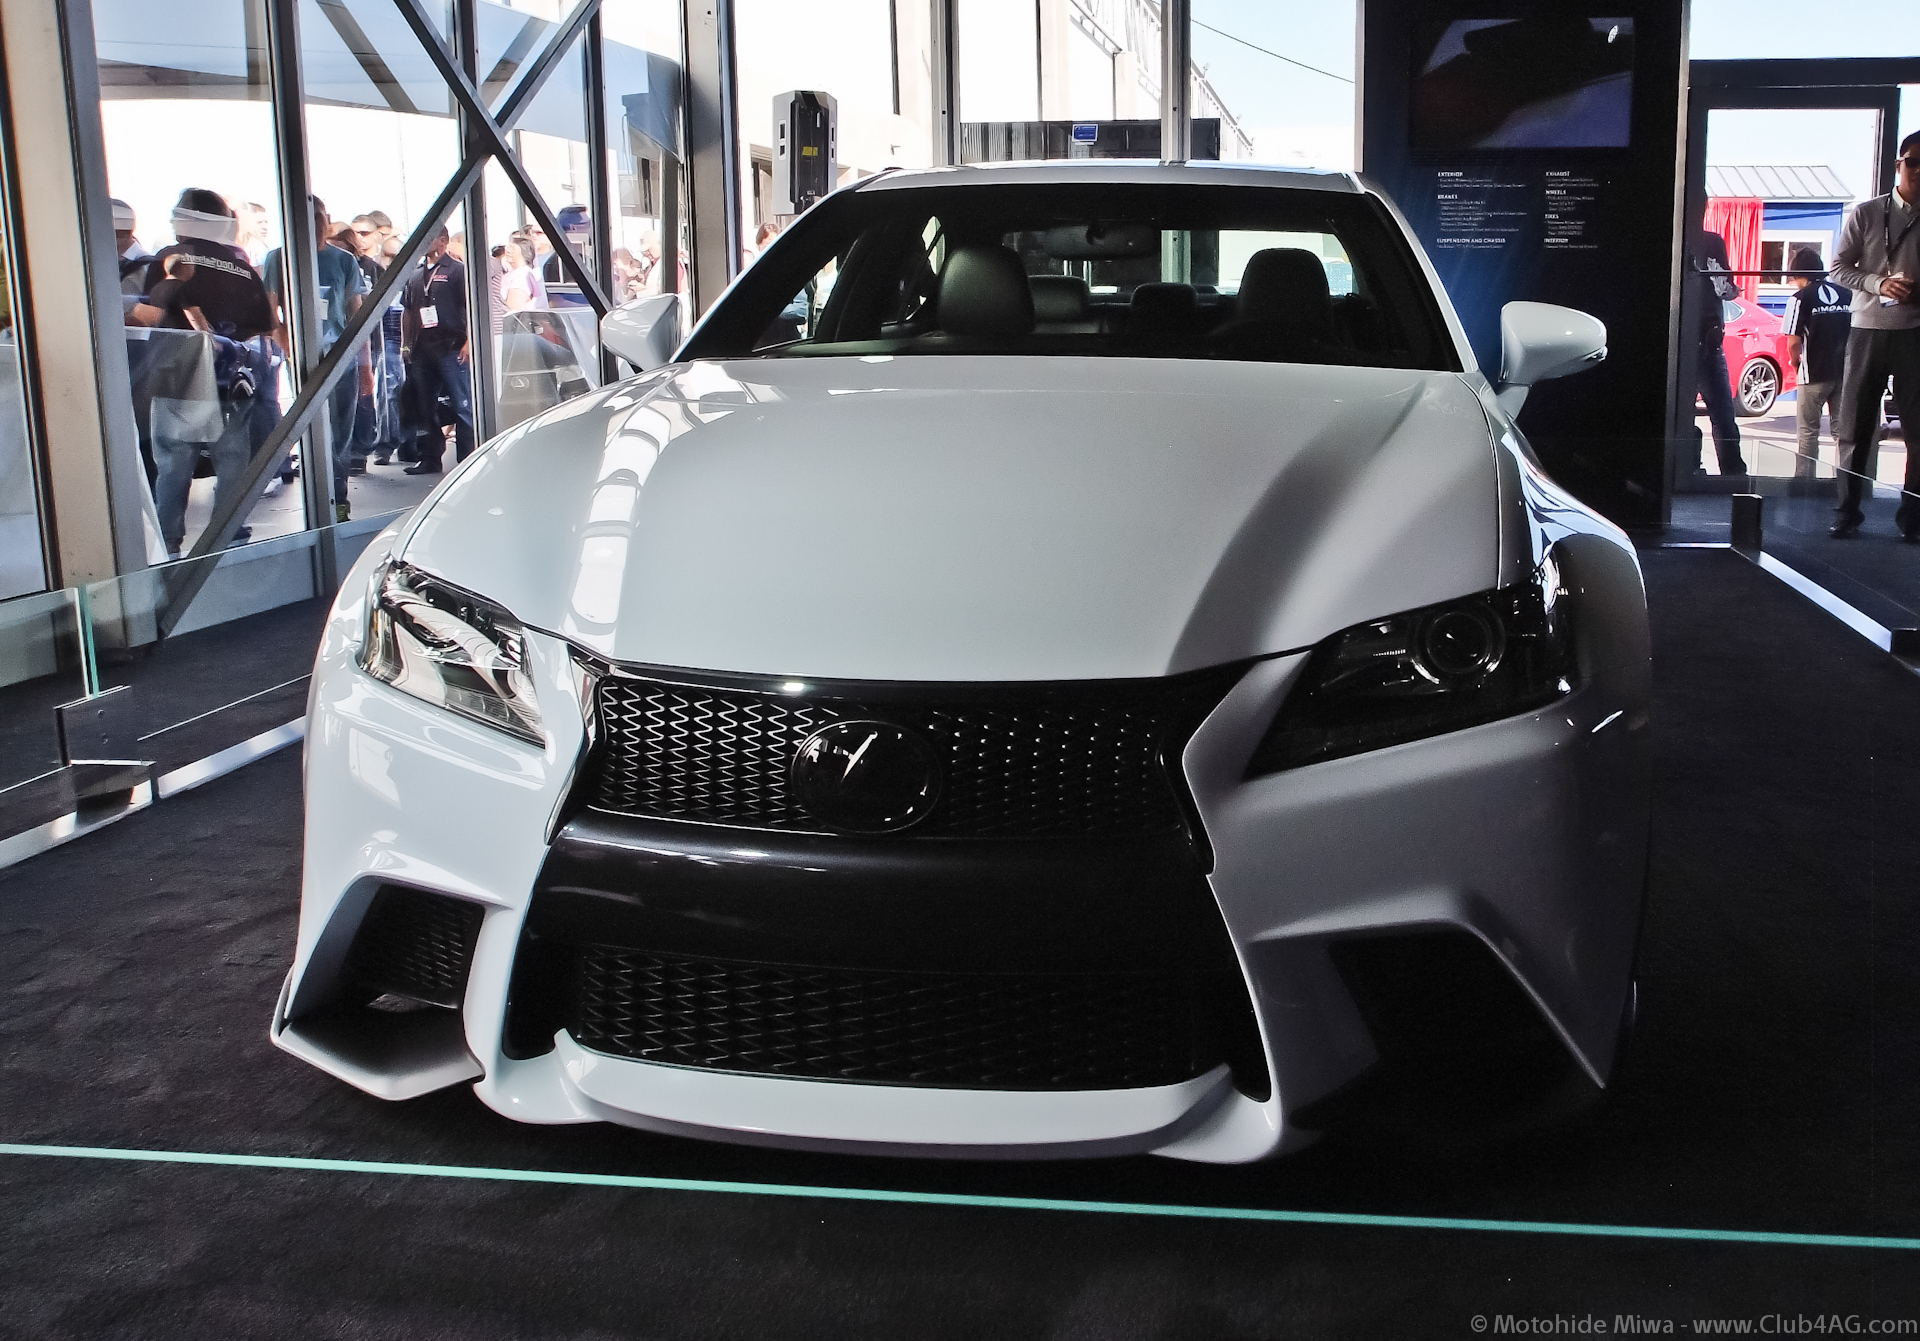 File Five Axis Lexus Gs Concept 2017 Flickr Moto Club4ag 4 Jpg